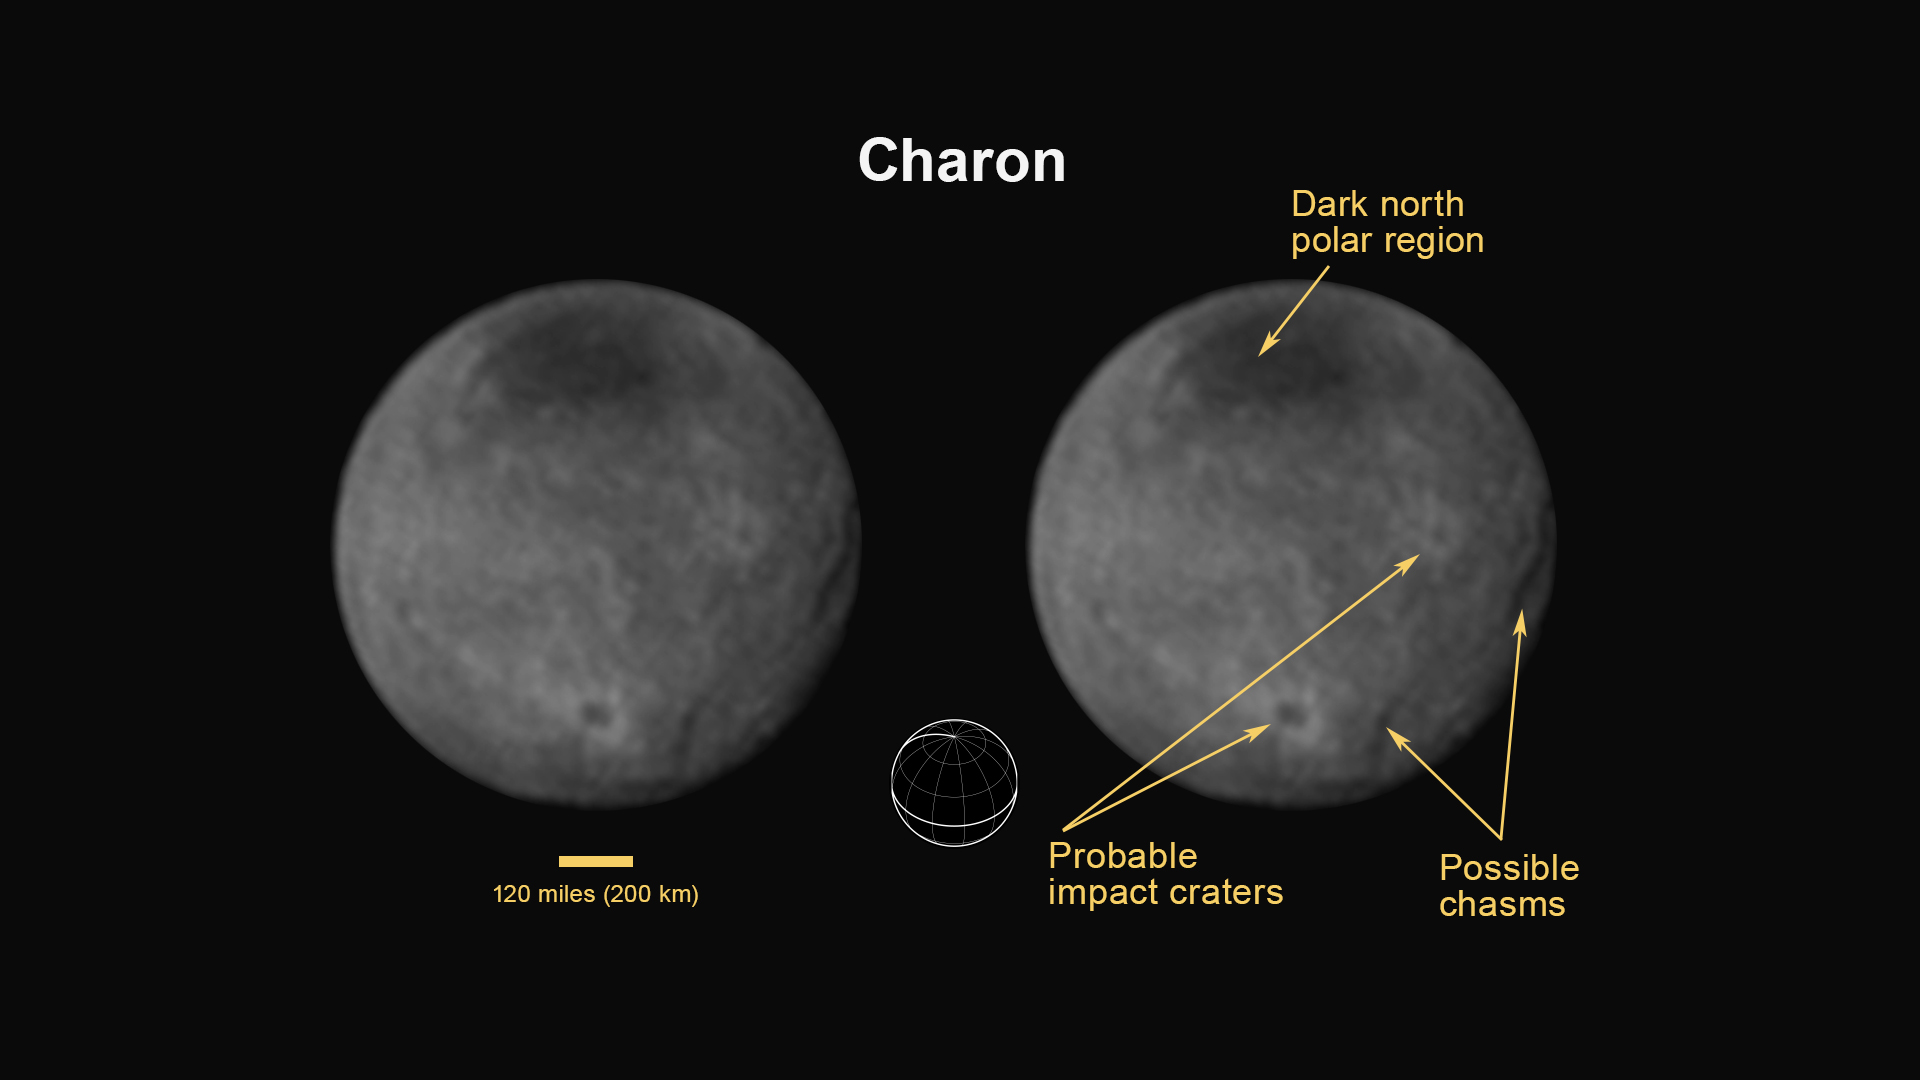 Charon's Craters and Chasms (Annotated)